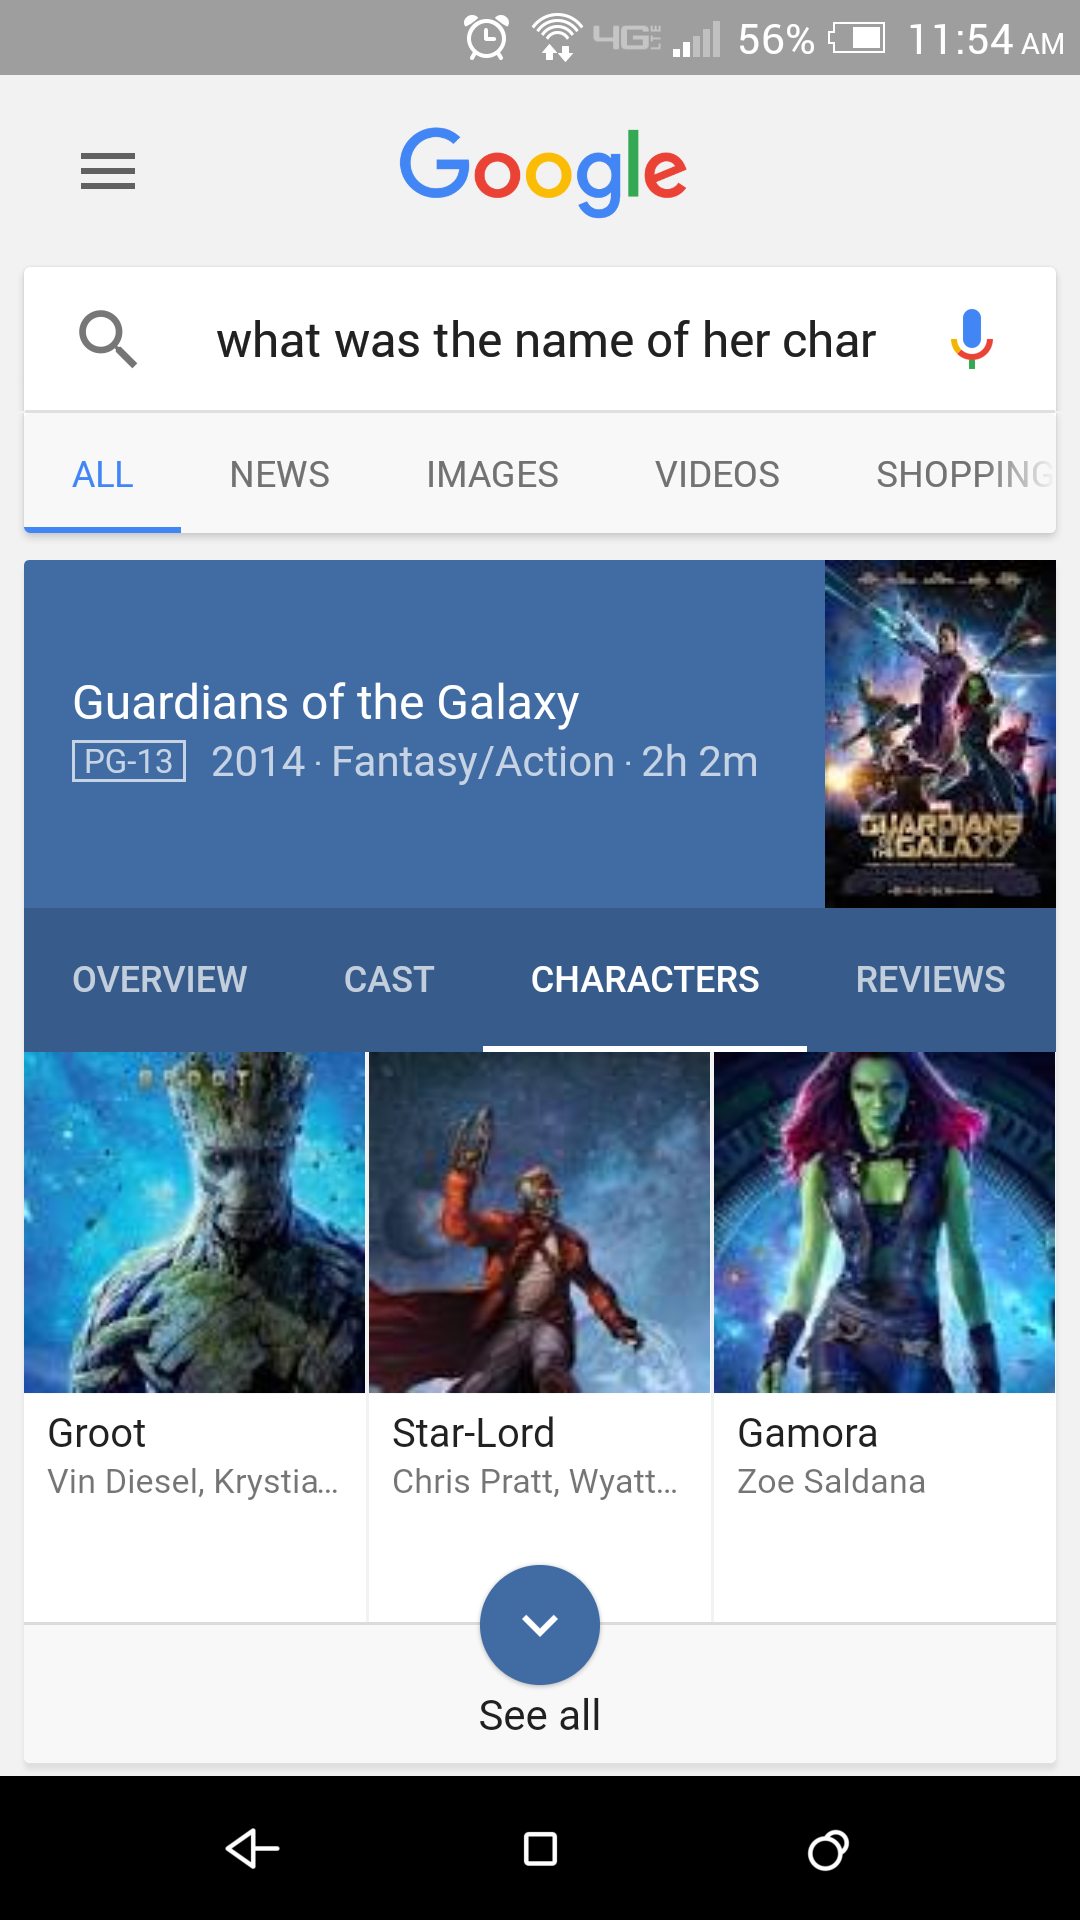 Google Voice Search Zoe Saldana's character in Guardians of the Galaxy